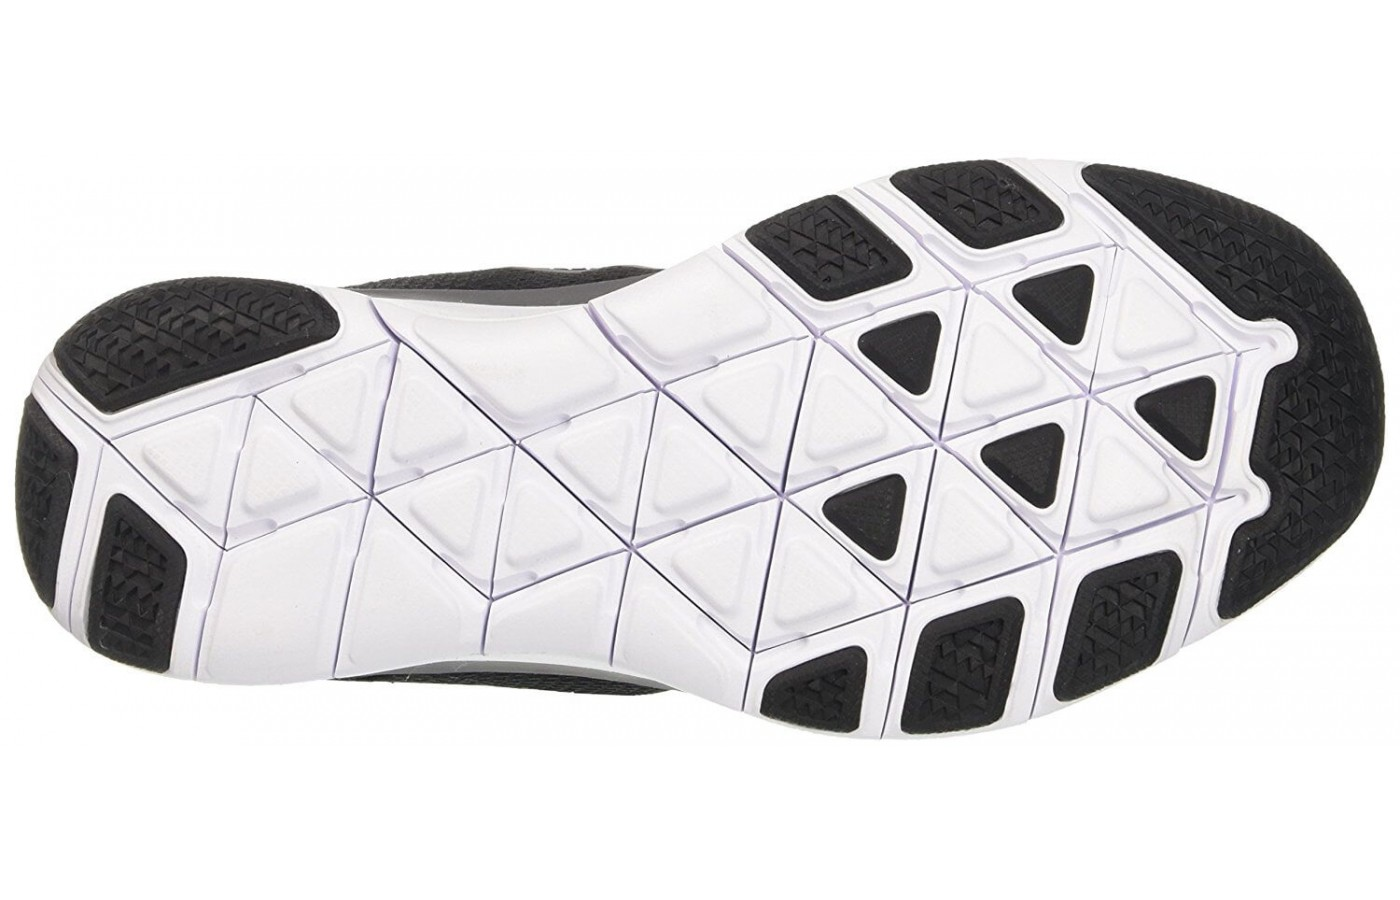 The Nike Free Trainer V7 has a rubber outsole